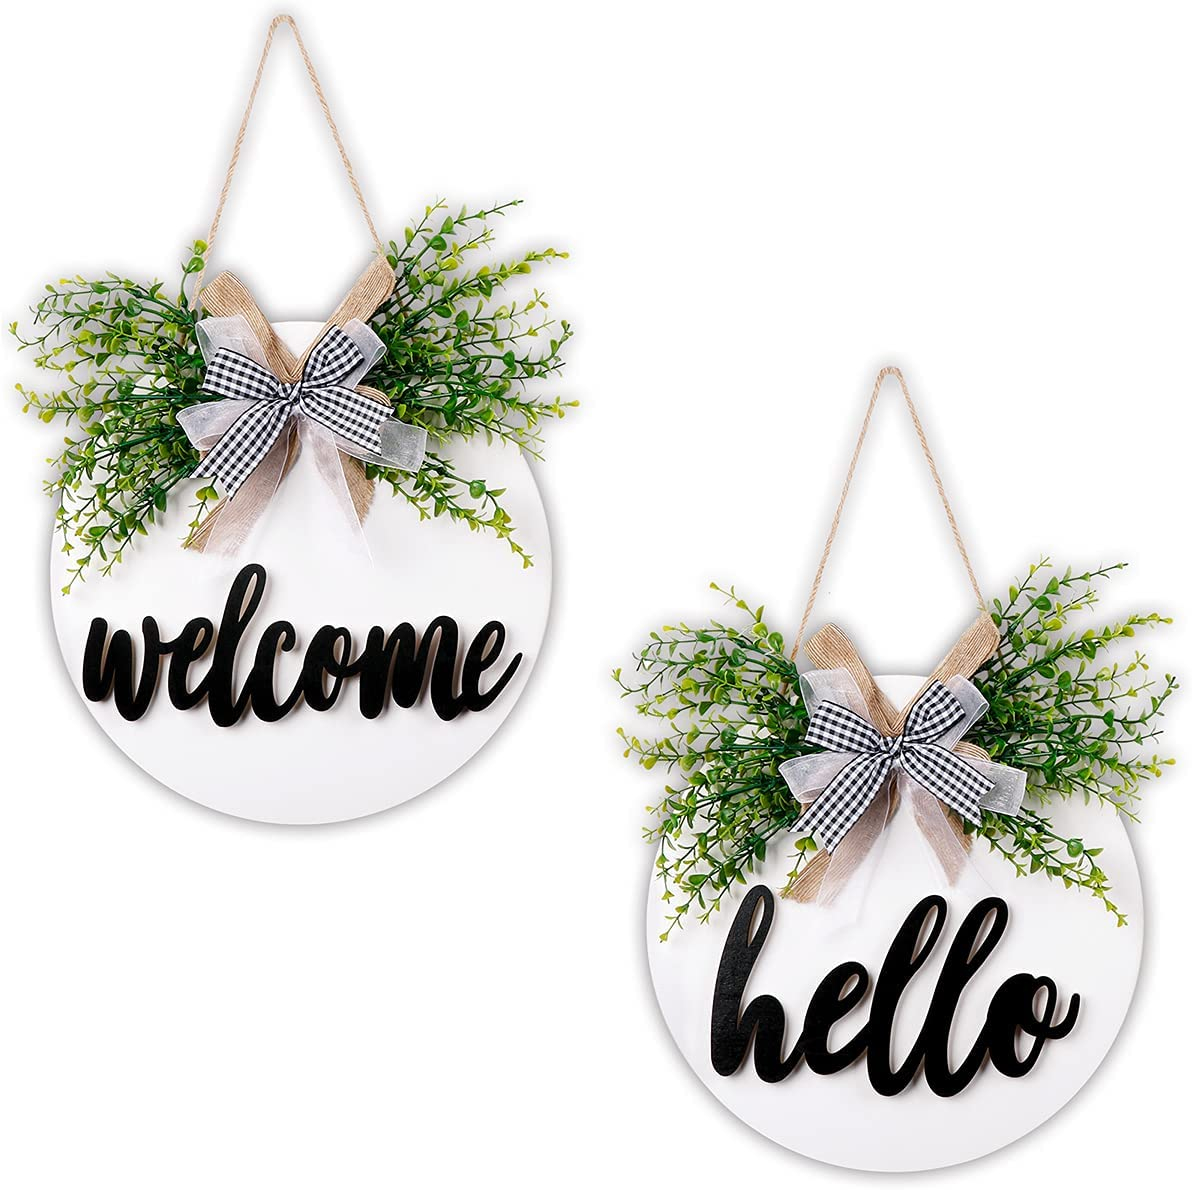 AerWo Seasonal Welcome Sign Front Door Porch Decor, Hello Interchangeable Rustic Wood Wall Hanging Porch Decorations for Housewarming Gifts, New Year, Christmas, Farmhouse Outdoor Home Decor, 11.8